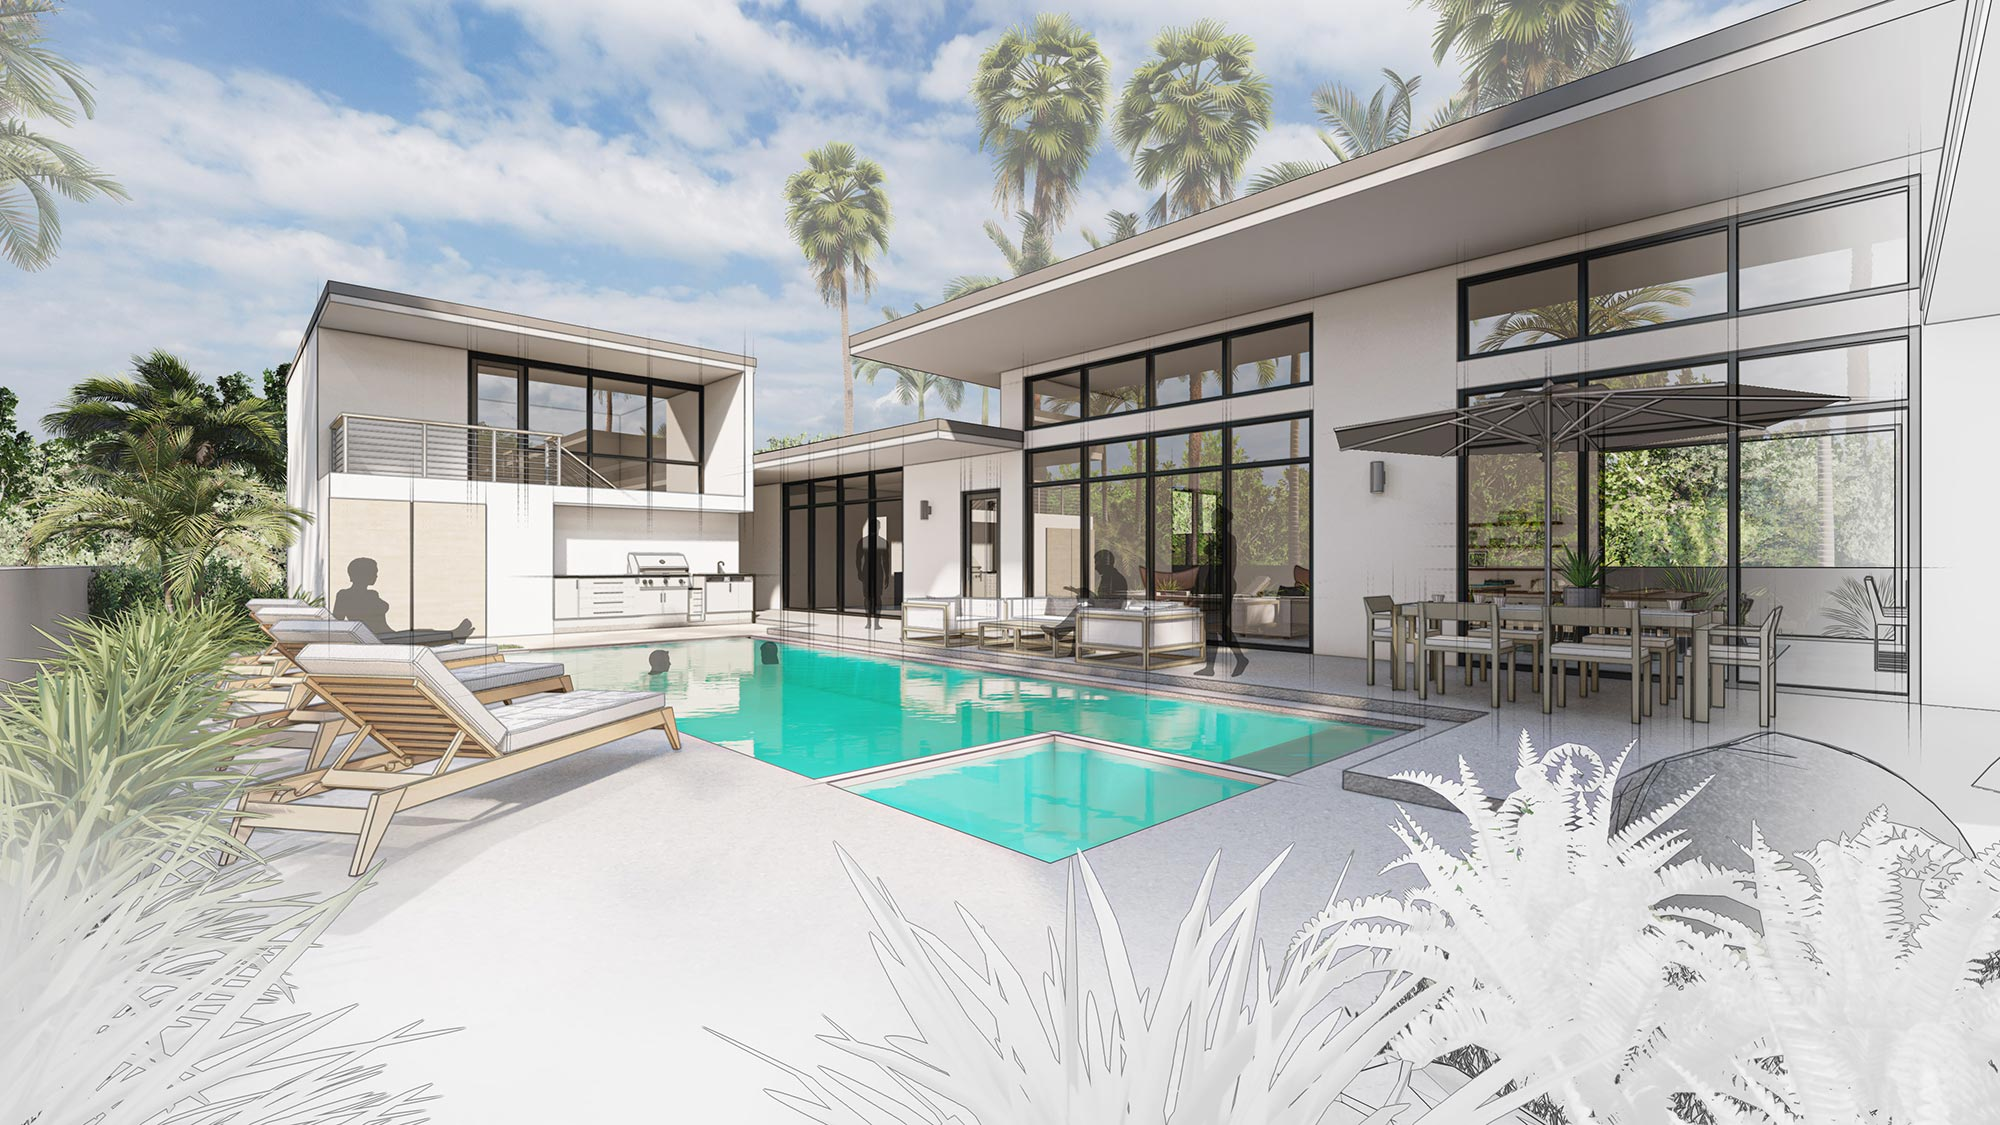 Rendering of pool deck with home beyond.